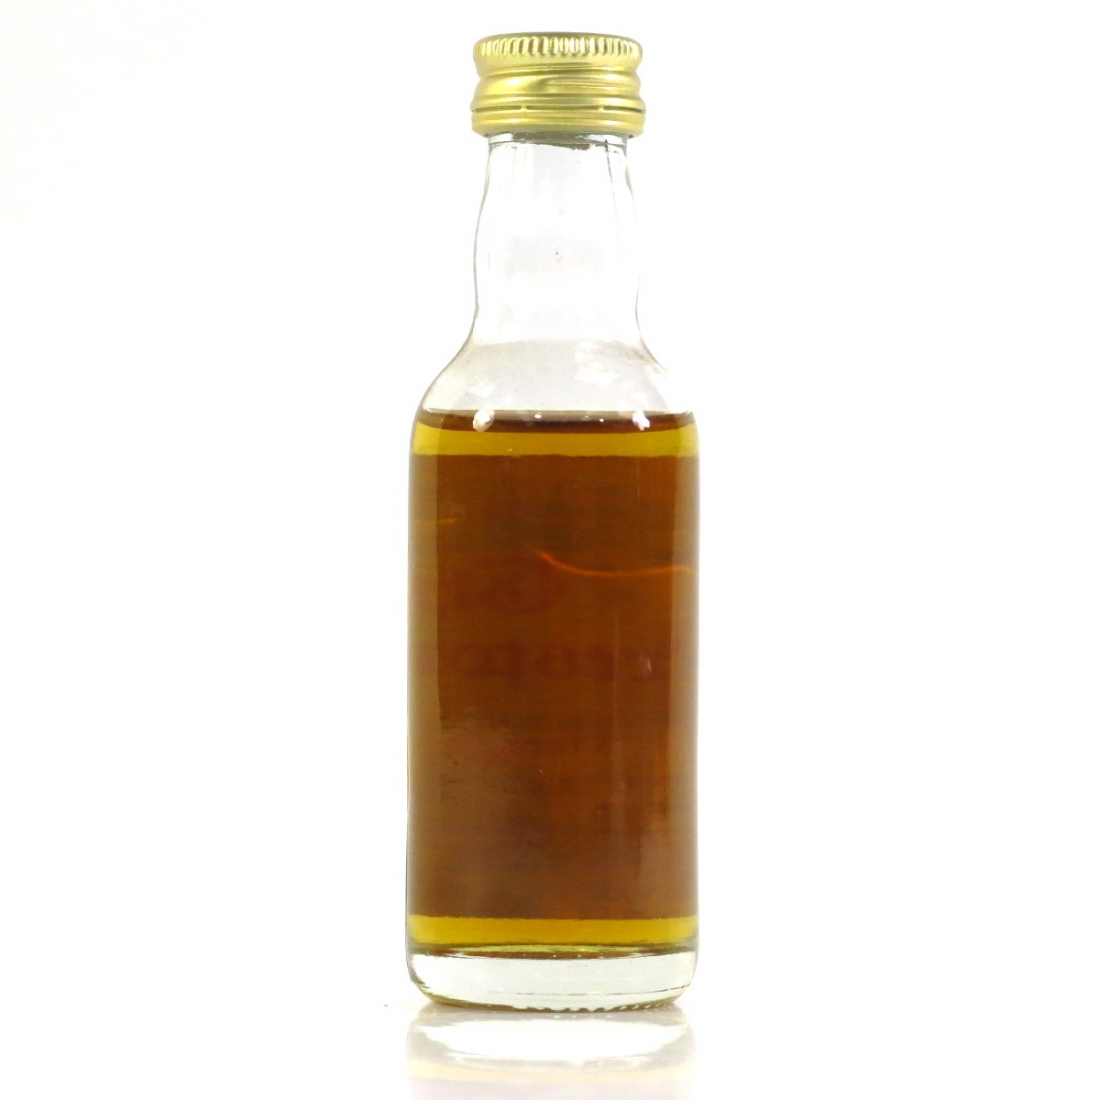 Bowmore 1965 Prestonfield 22 Year Old Miniature 5cl